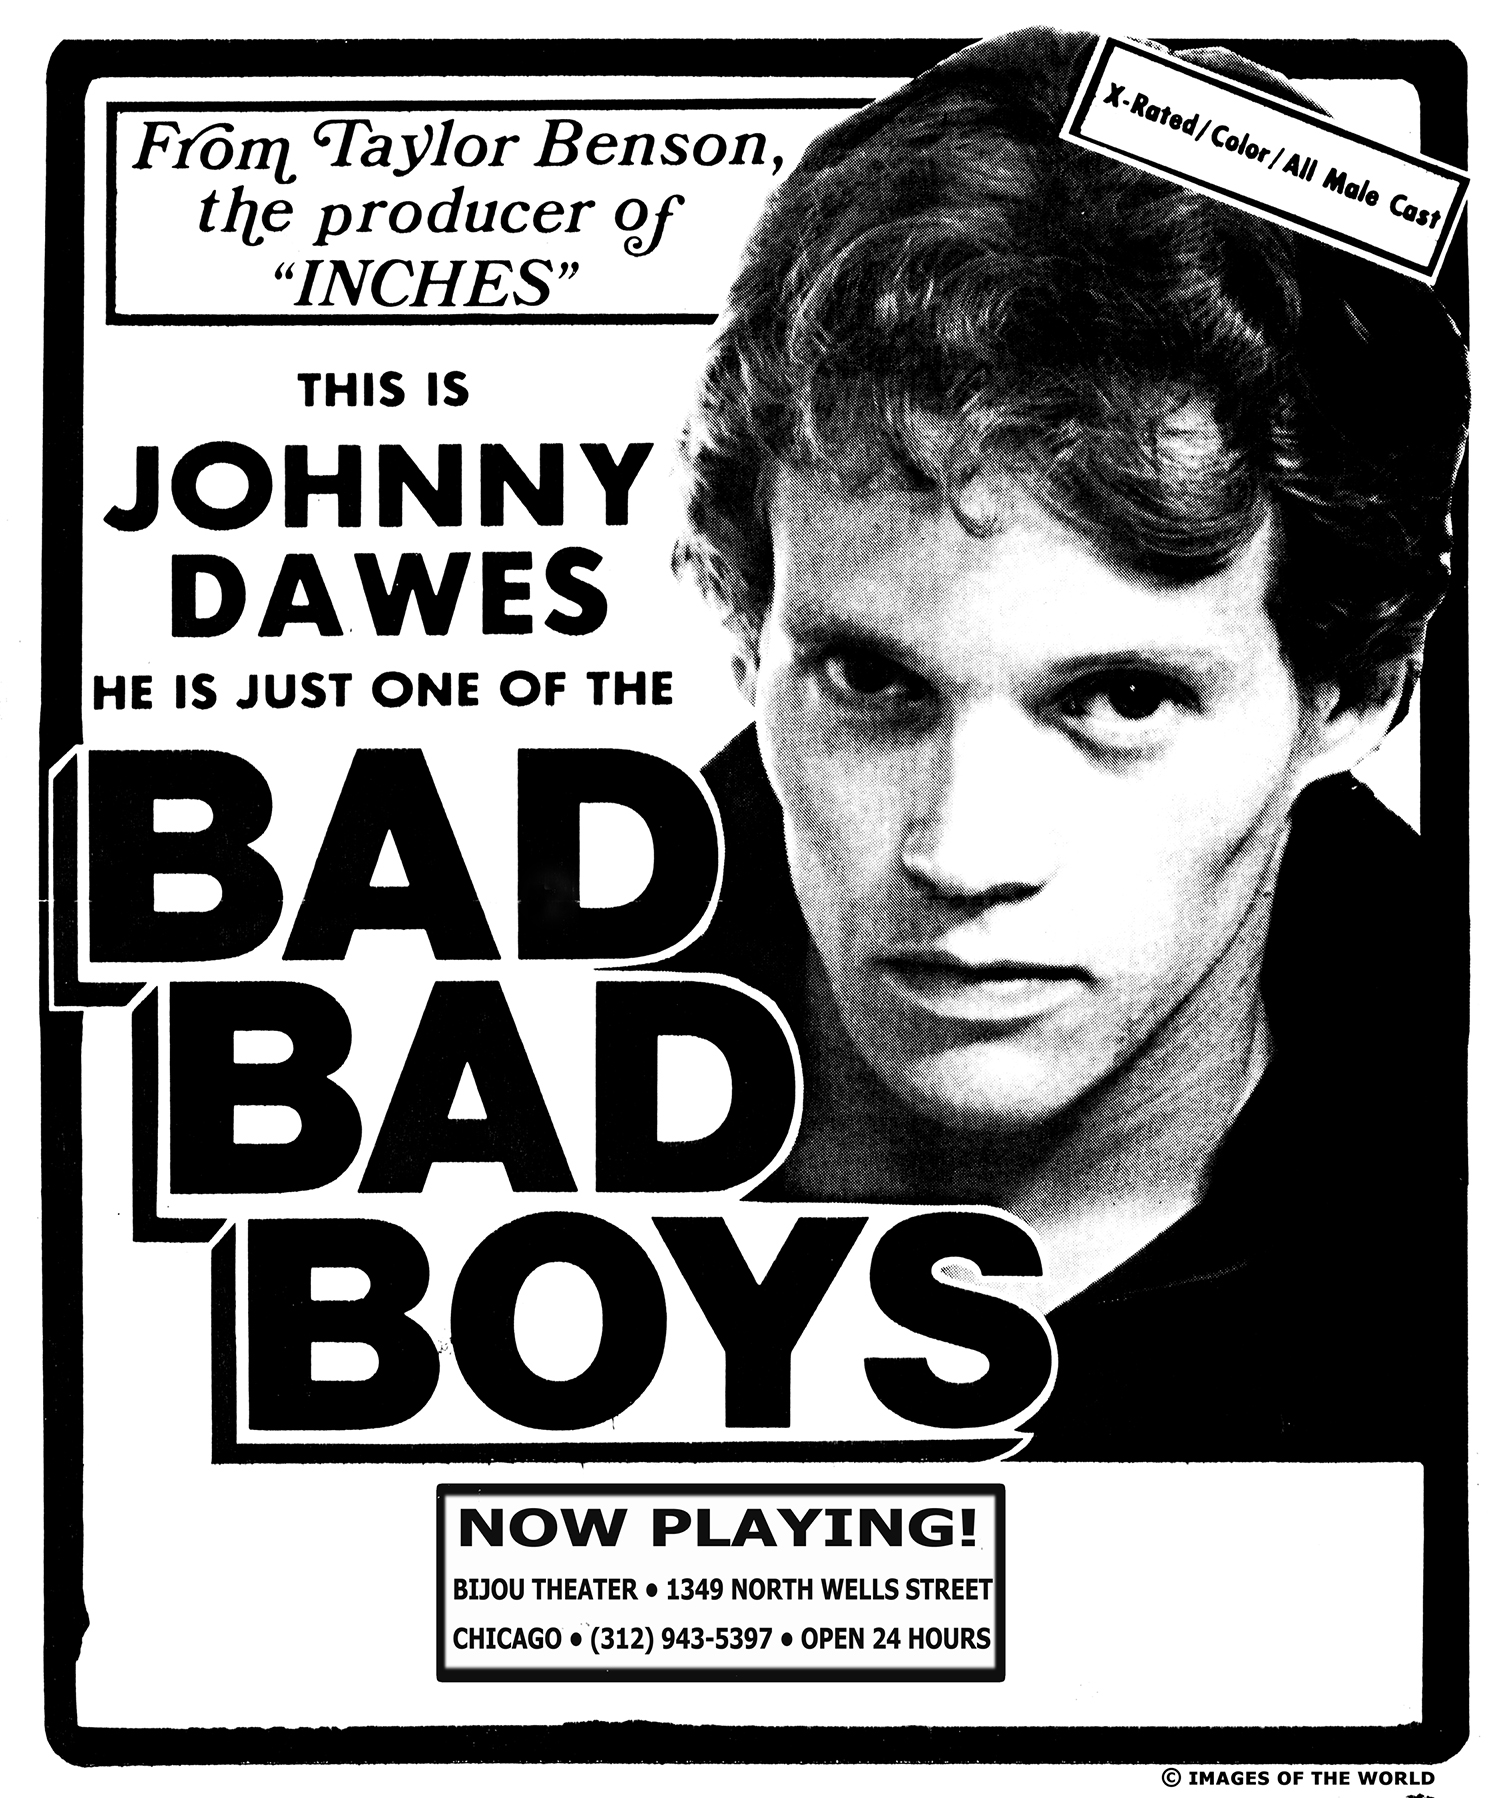 Poster for Bad Bad Boys